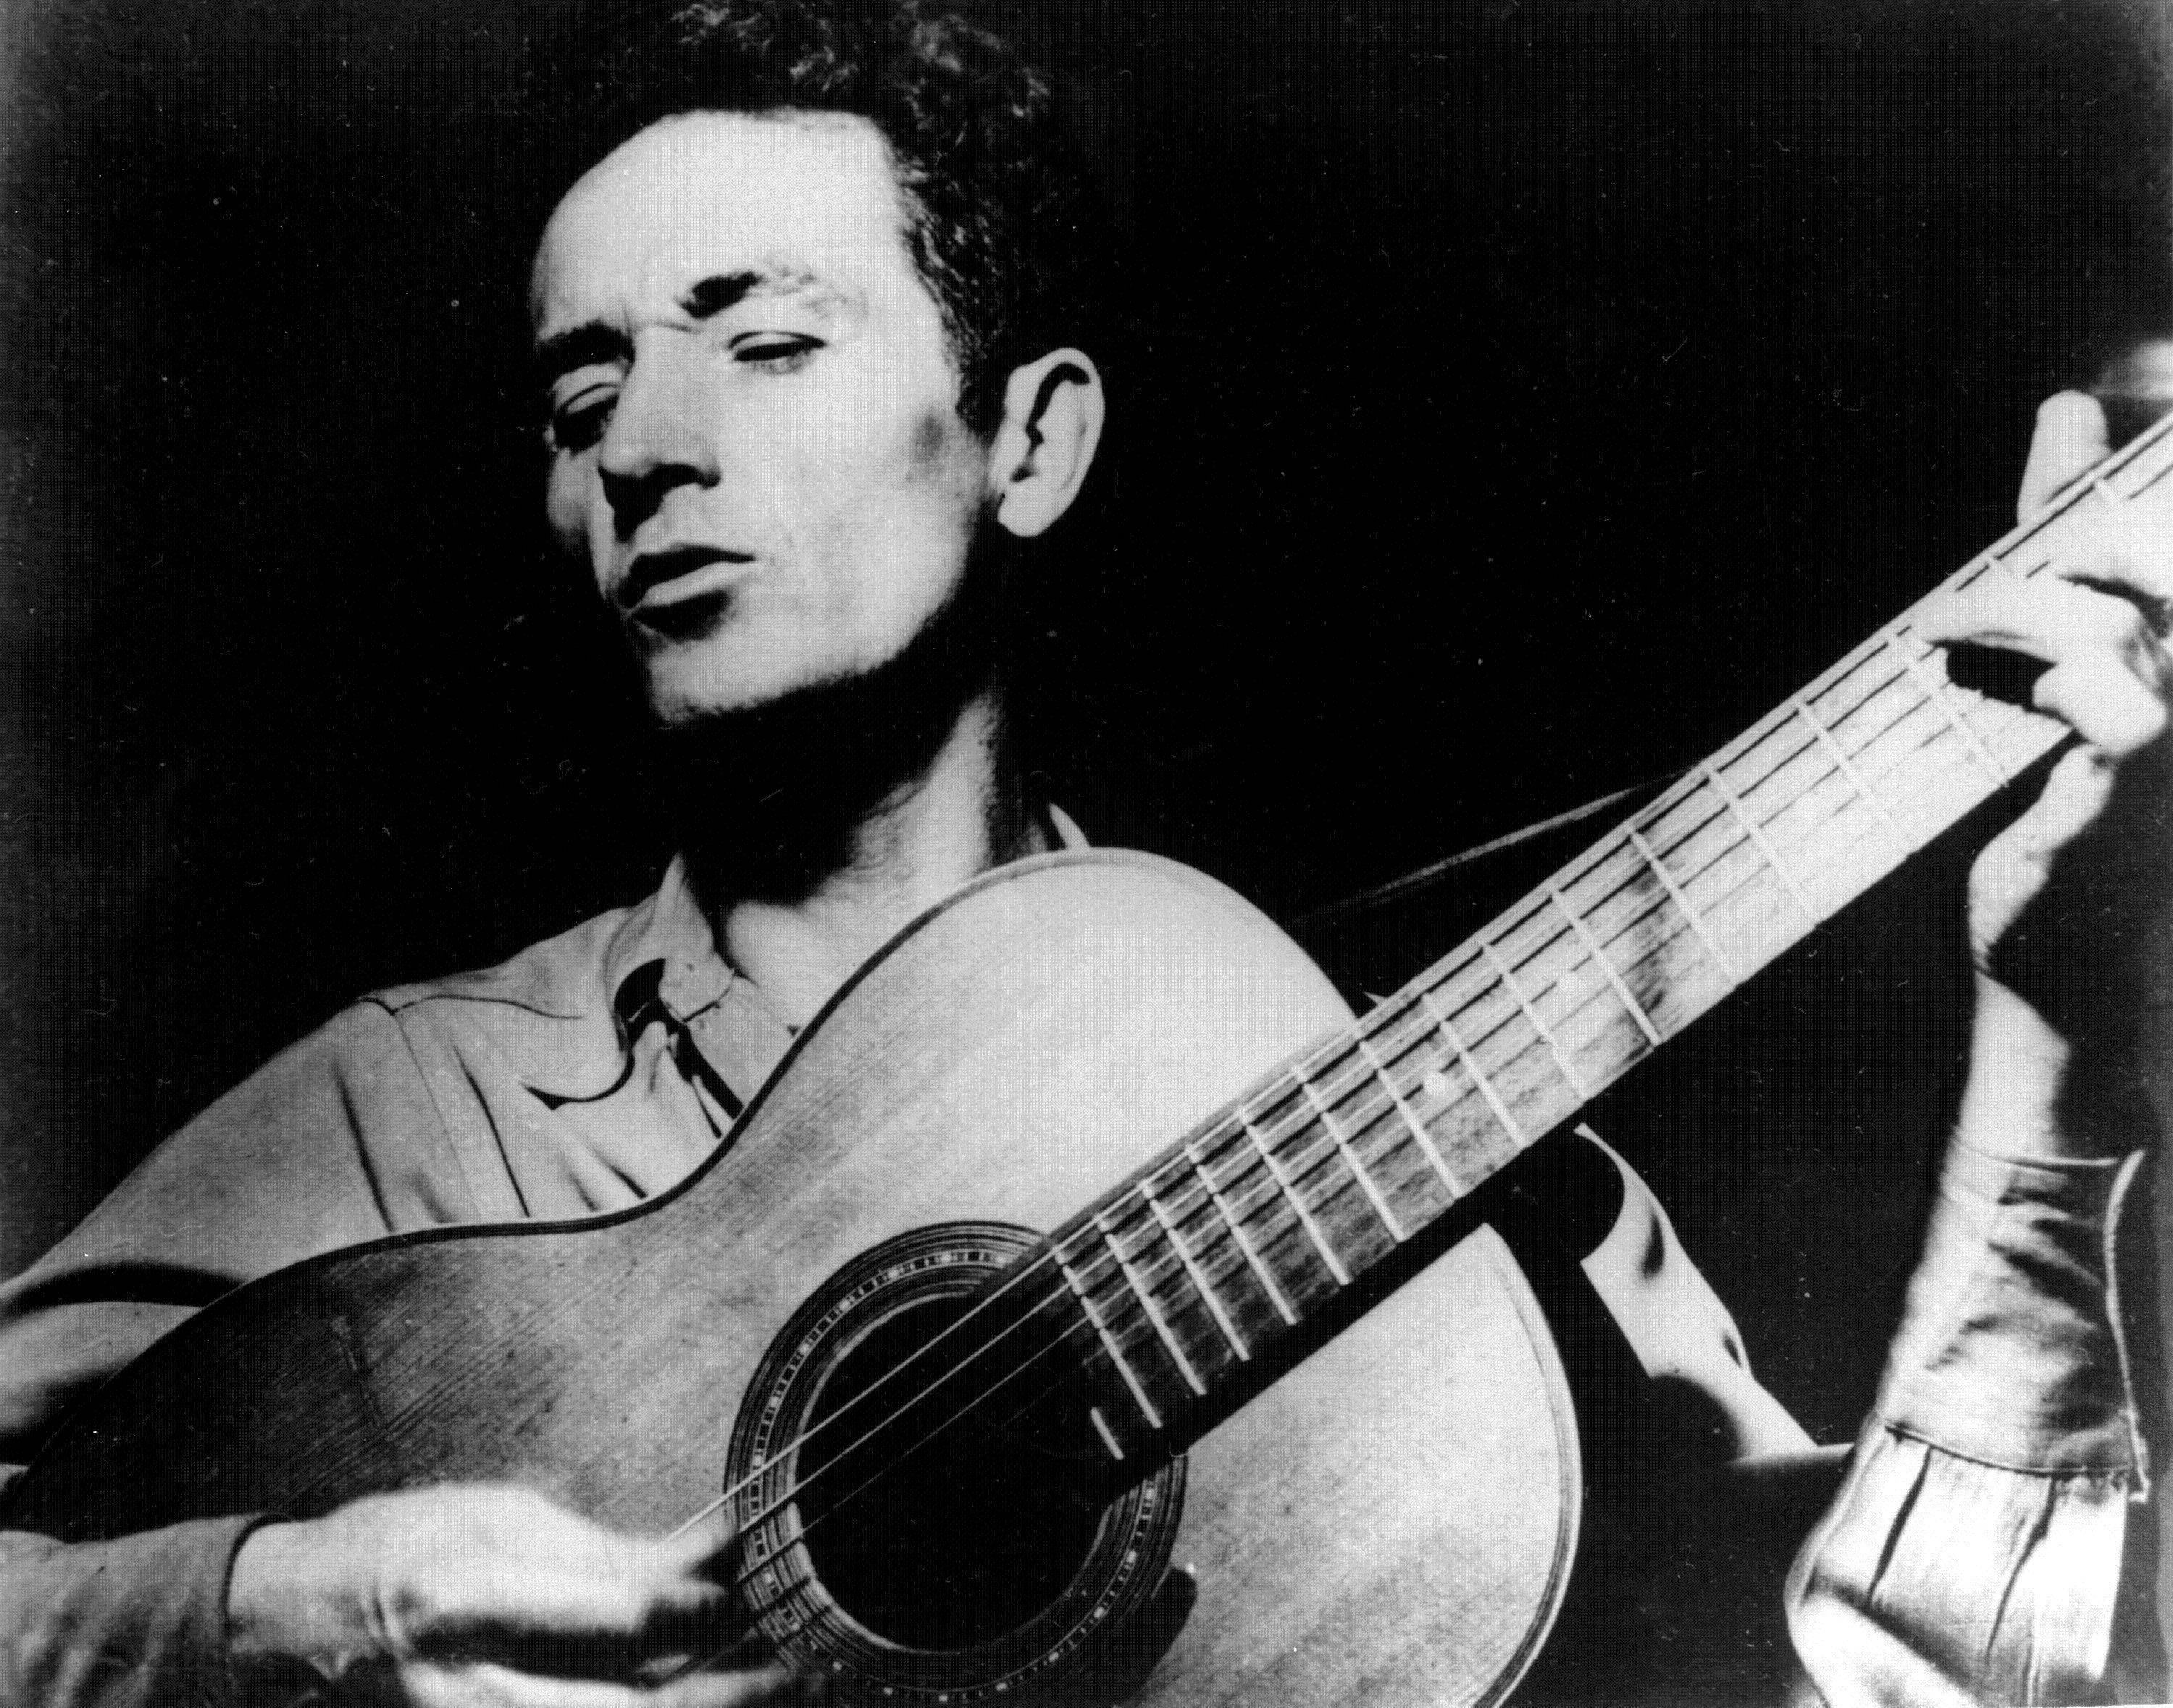 Woody Guthrie's writings, recordings and artwork will land in his native state after an Oklahoma foundation bought the collection, with plans for a display that concentrates on his artistry rather than the populist politics that divided local opinion over the years.